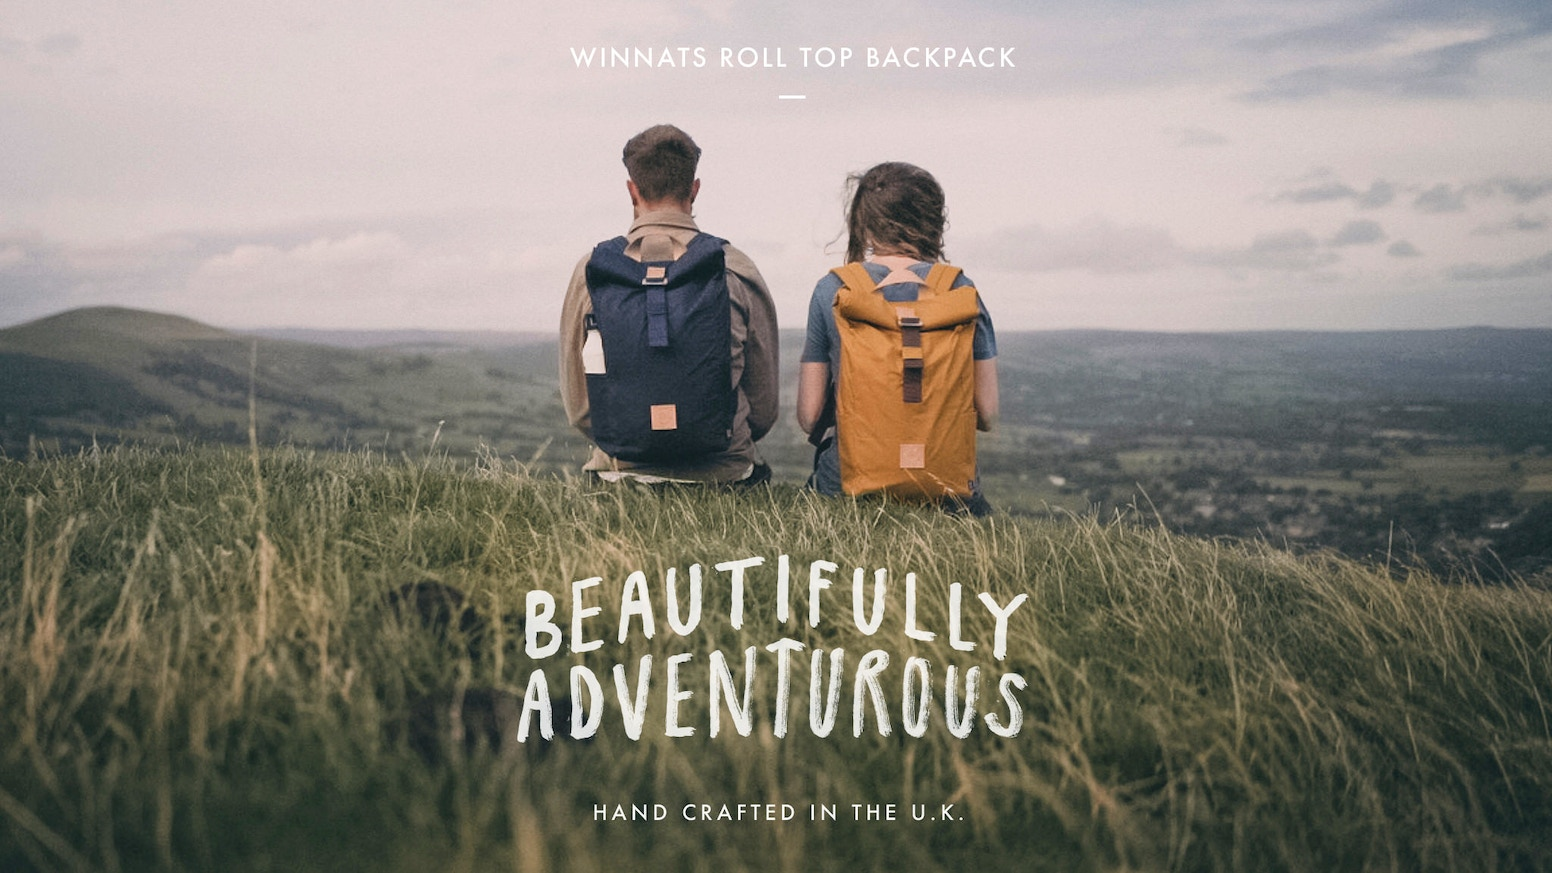 The beautifully adventurous pack for outdoor & city wanderings. Waxed cotton, British leather, stainless steel. Hand-crafted in the UK.